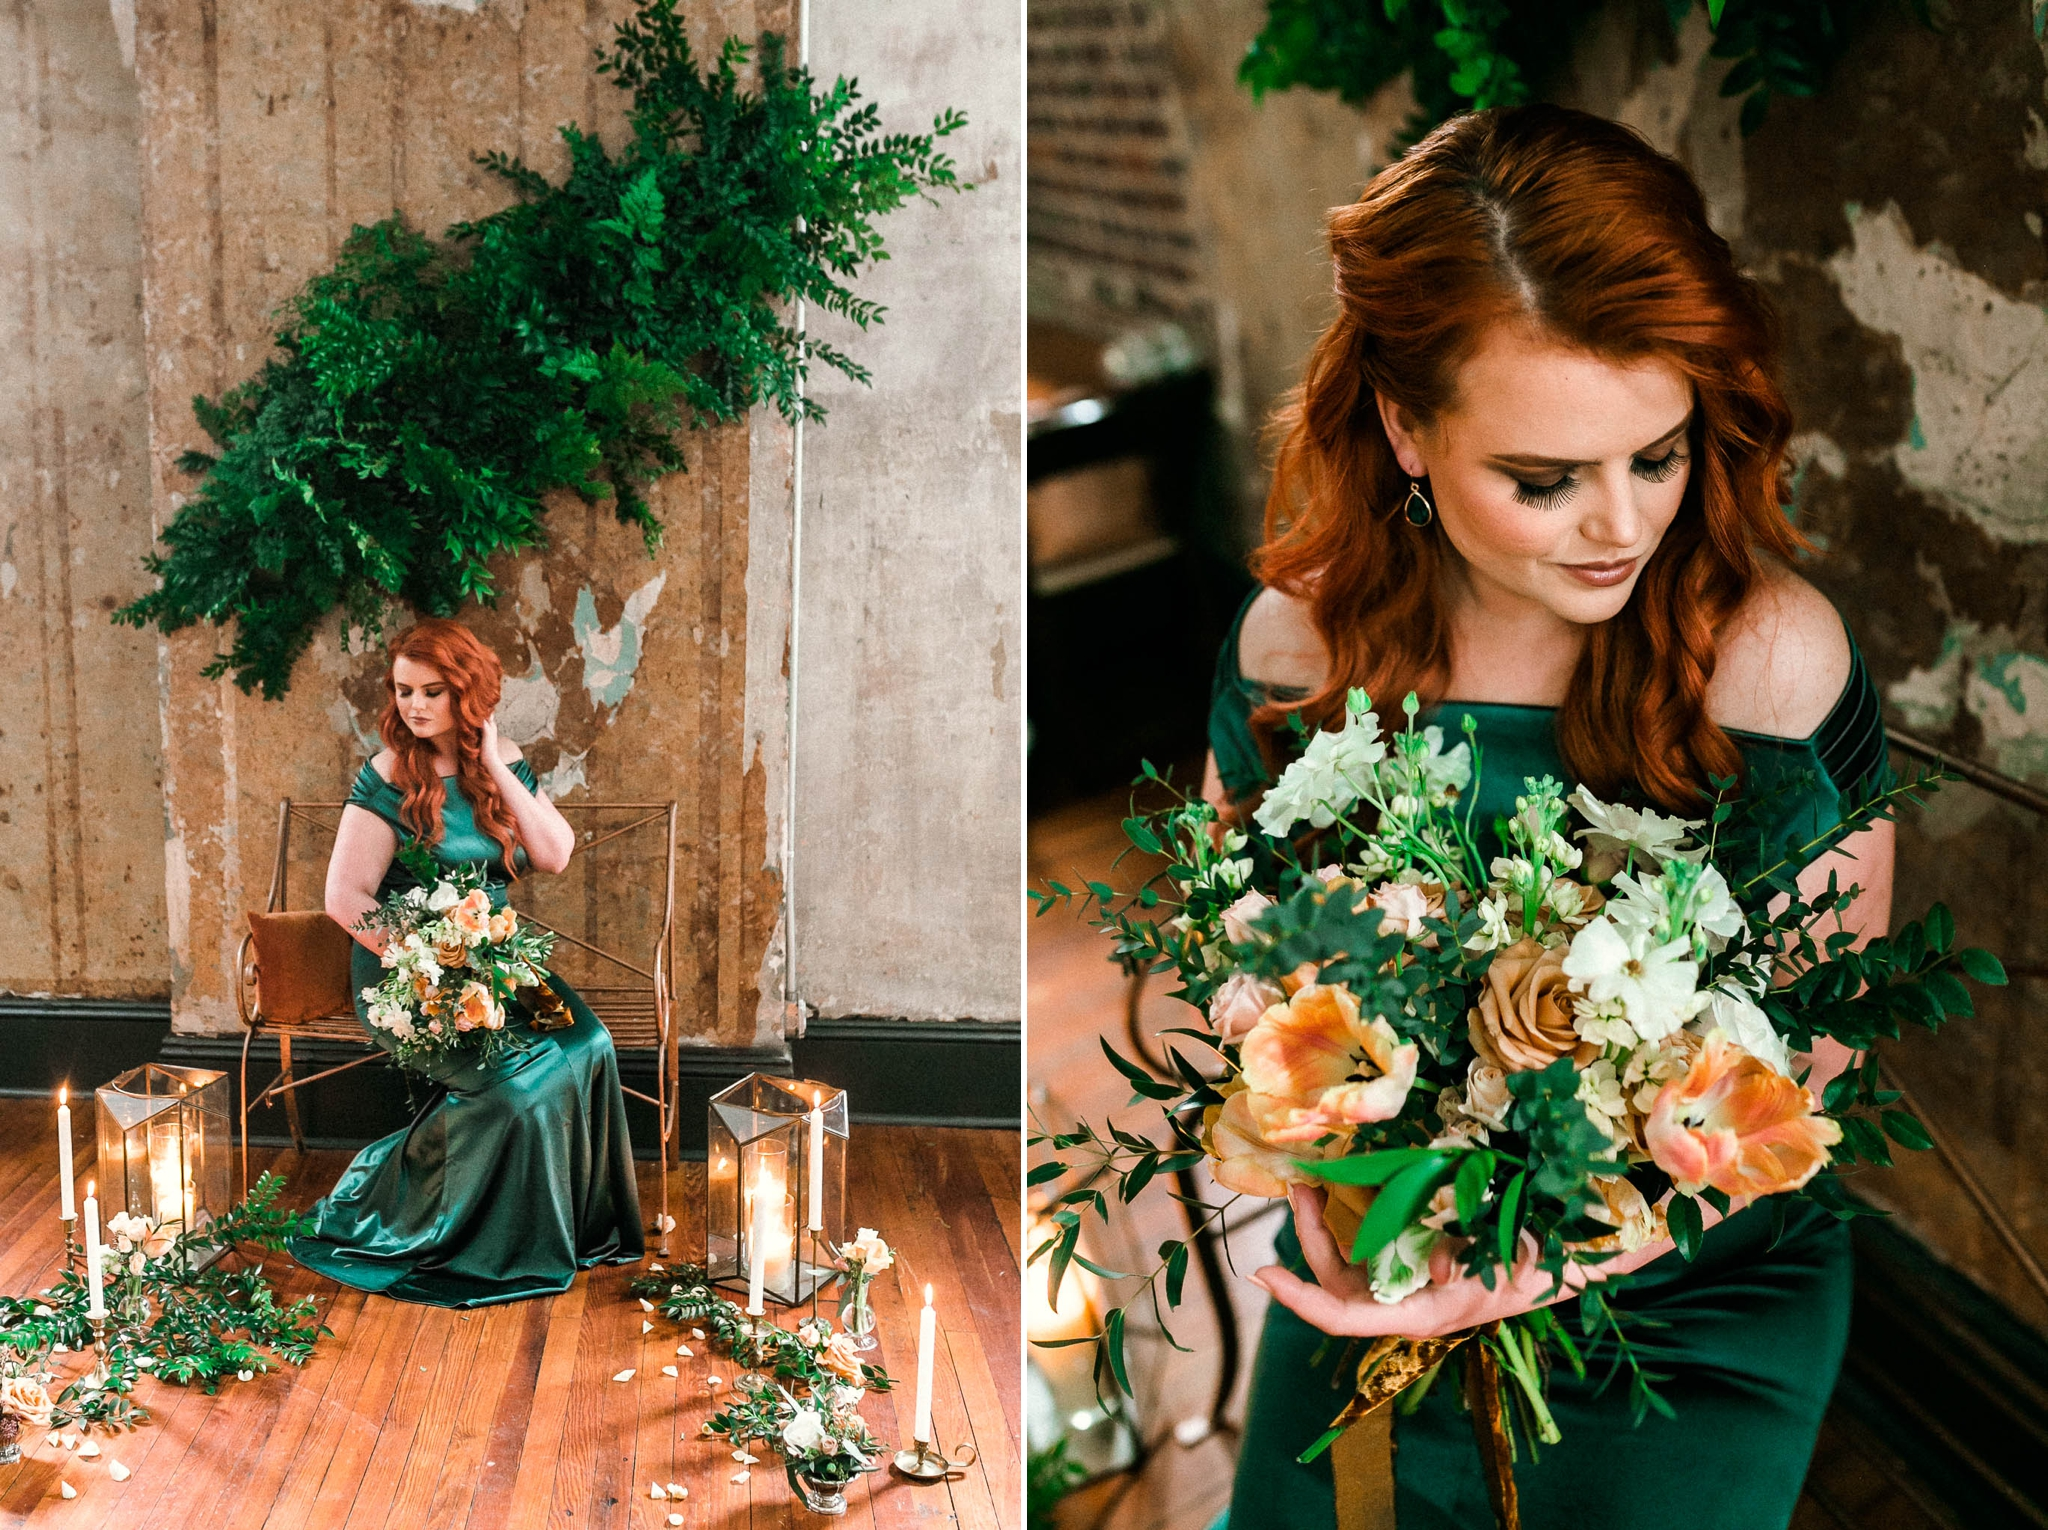 Ginger Red head Bride in an unique emerald wedding dress in front of a flower and candle display - Emerald Wedding Inspiration - Oahu Hawaii Wedding Photographer - Johanna Dye Photography